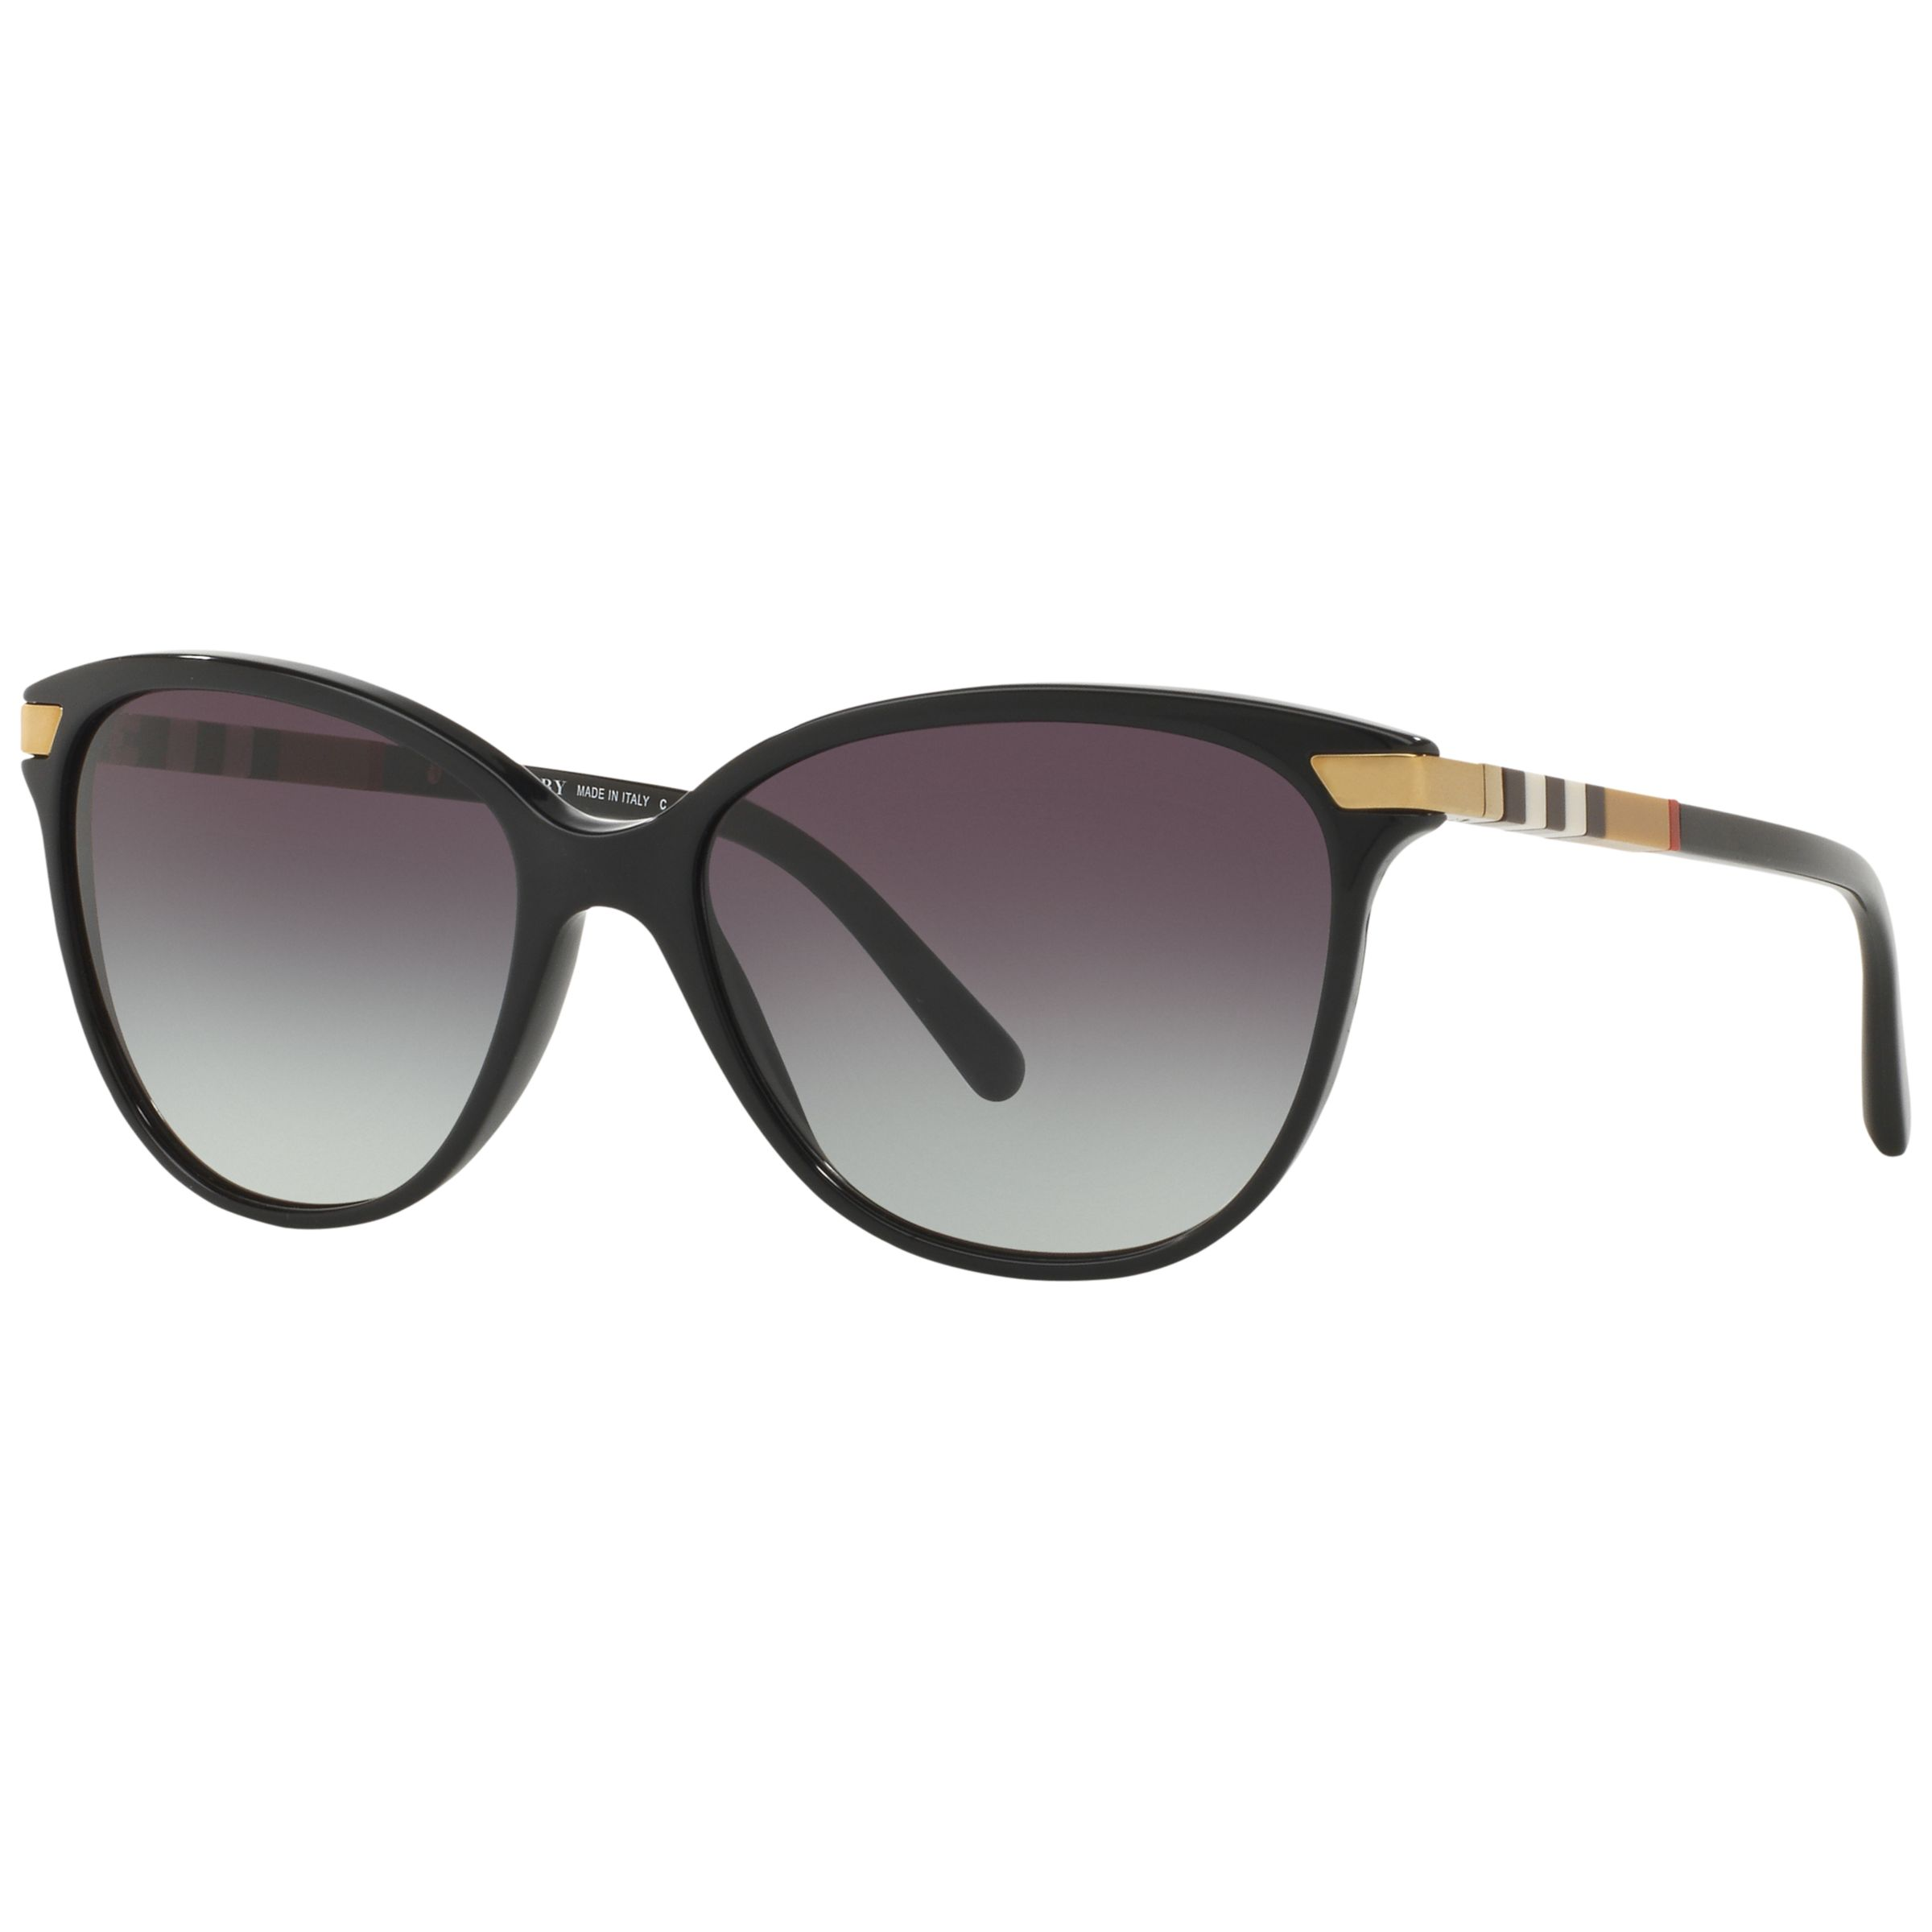 Burberry Burberry BE4216 Cat's Eye Gradient Sunglasses, Black